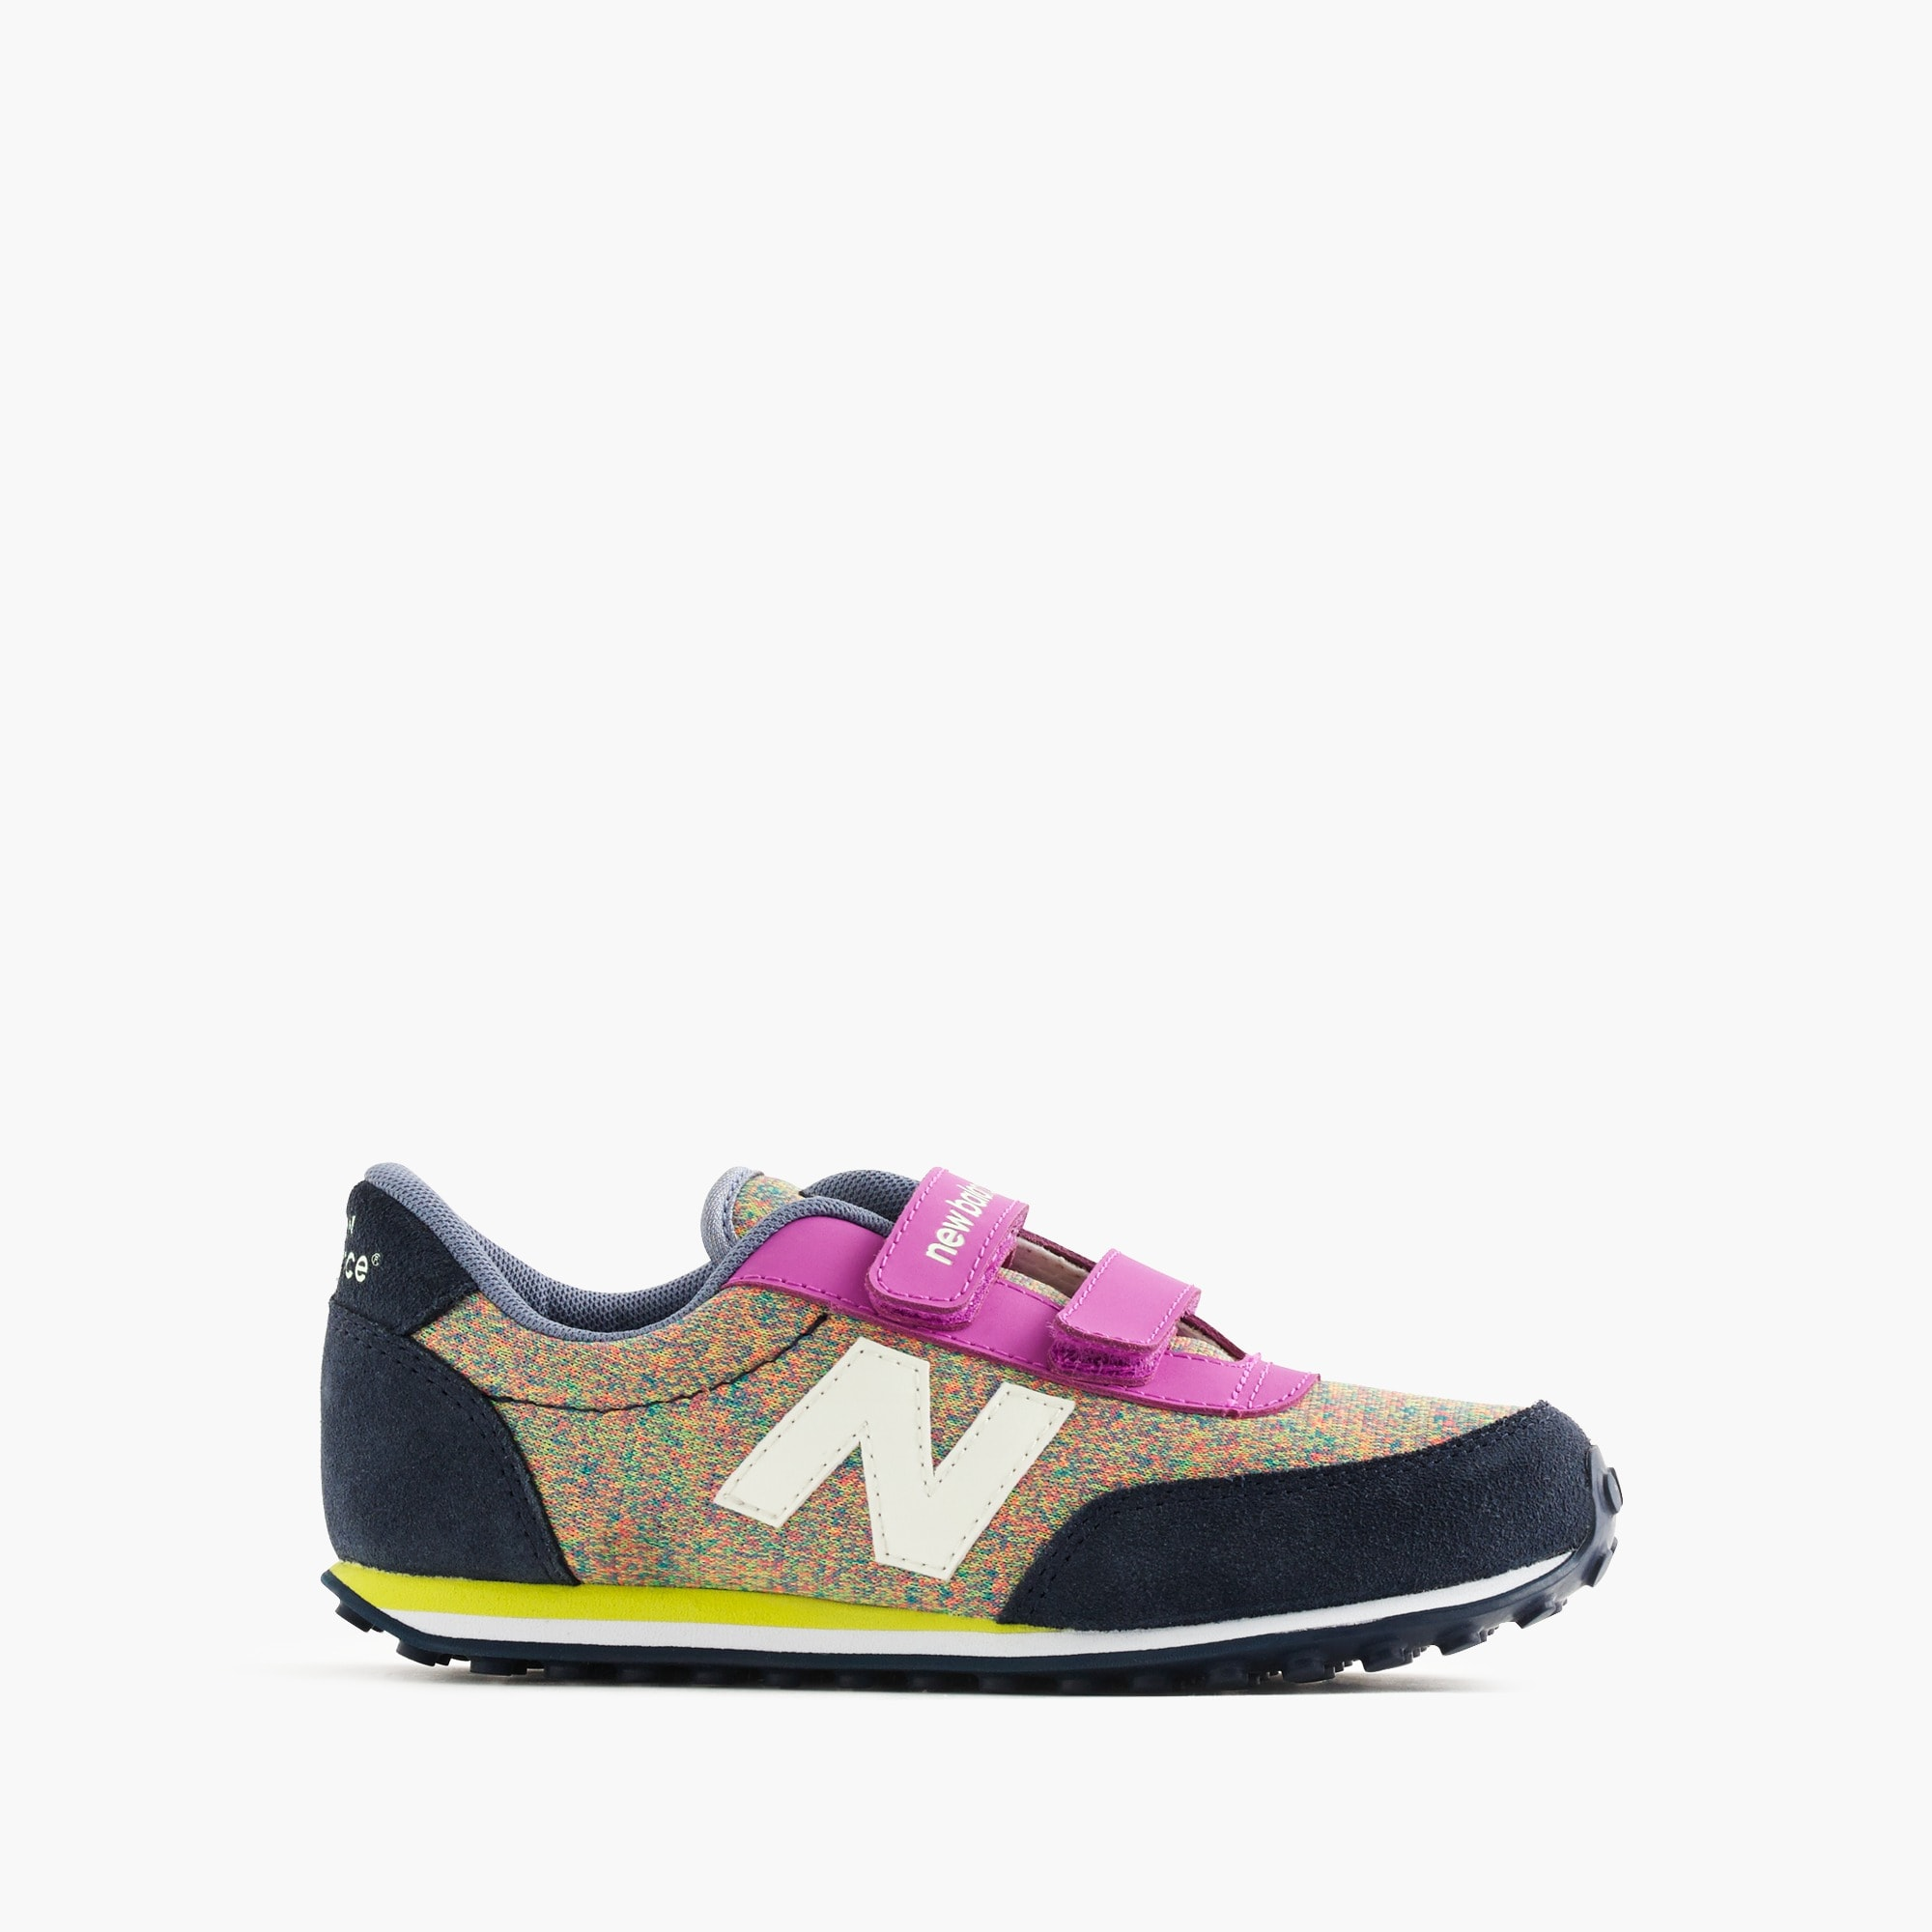 Image 1 for Kids' New Balance® for crewcuts 410 Velcro® sneakers